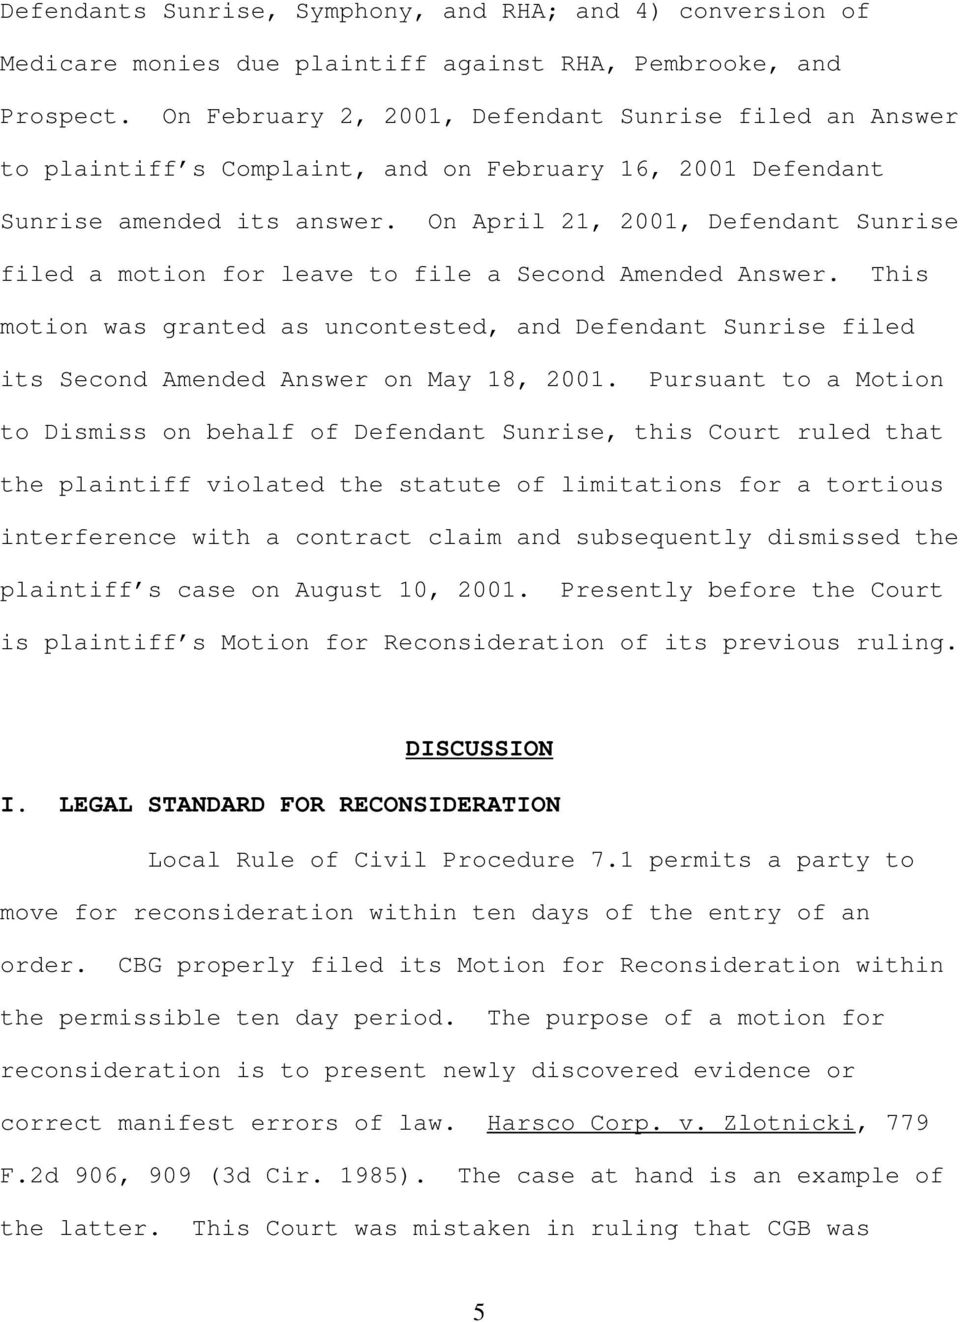 On April 21, 2001, Defendant Sunrise filed a motion for leave to file a Second Amended Answer.